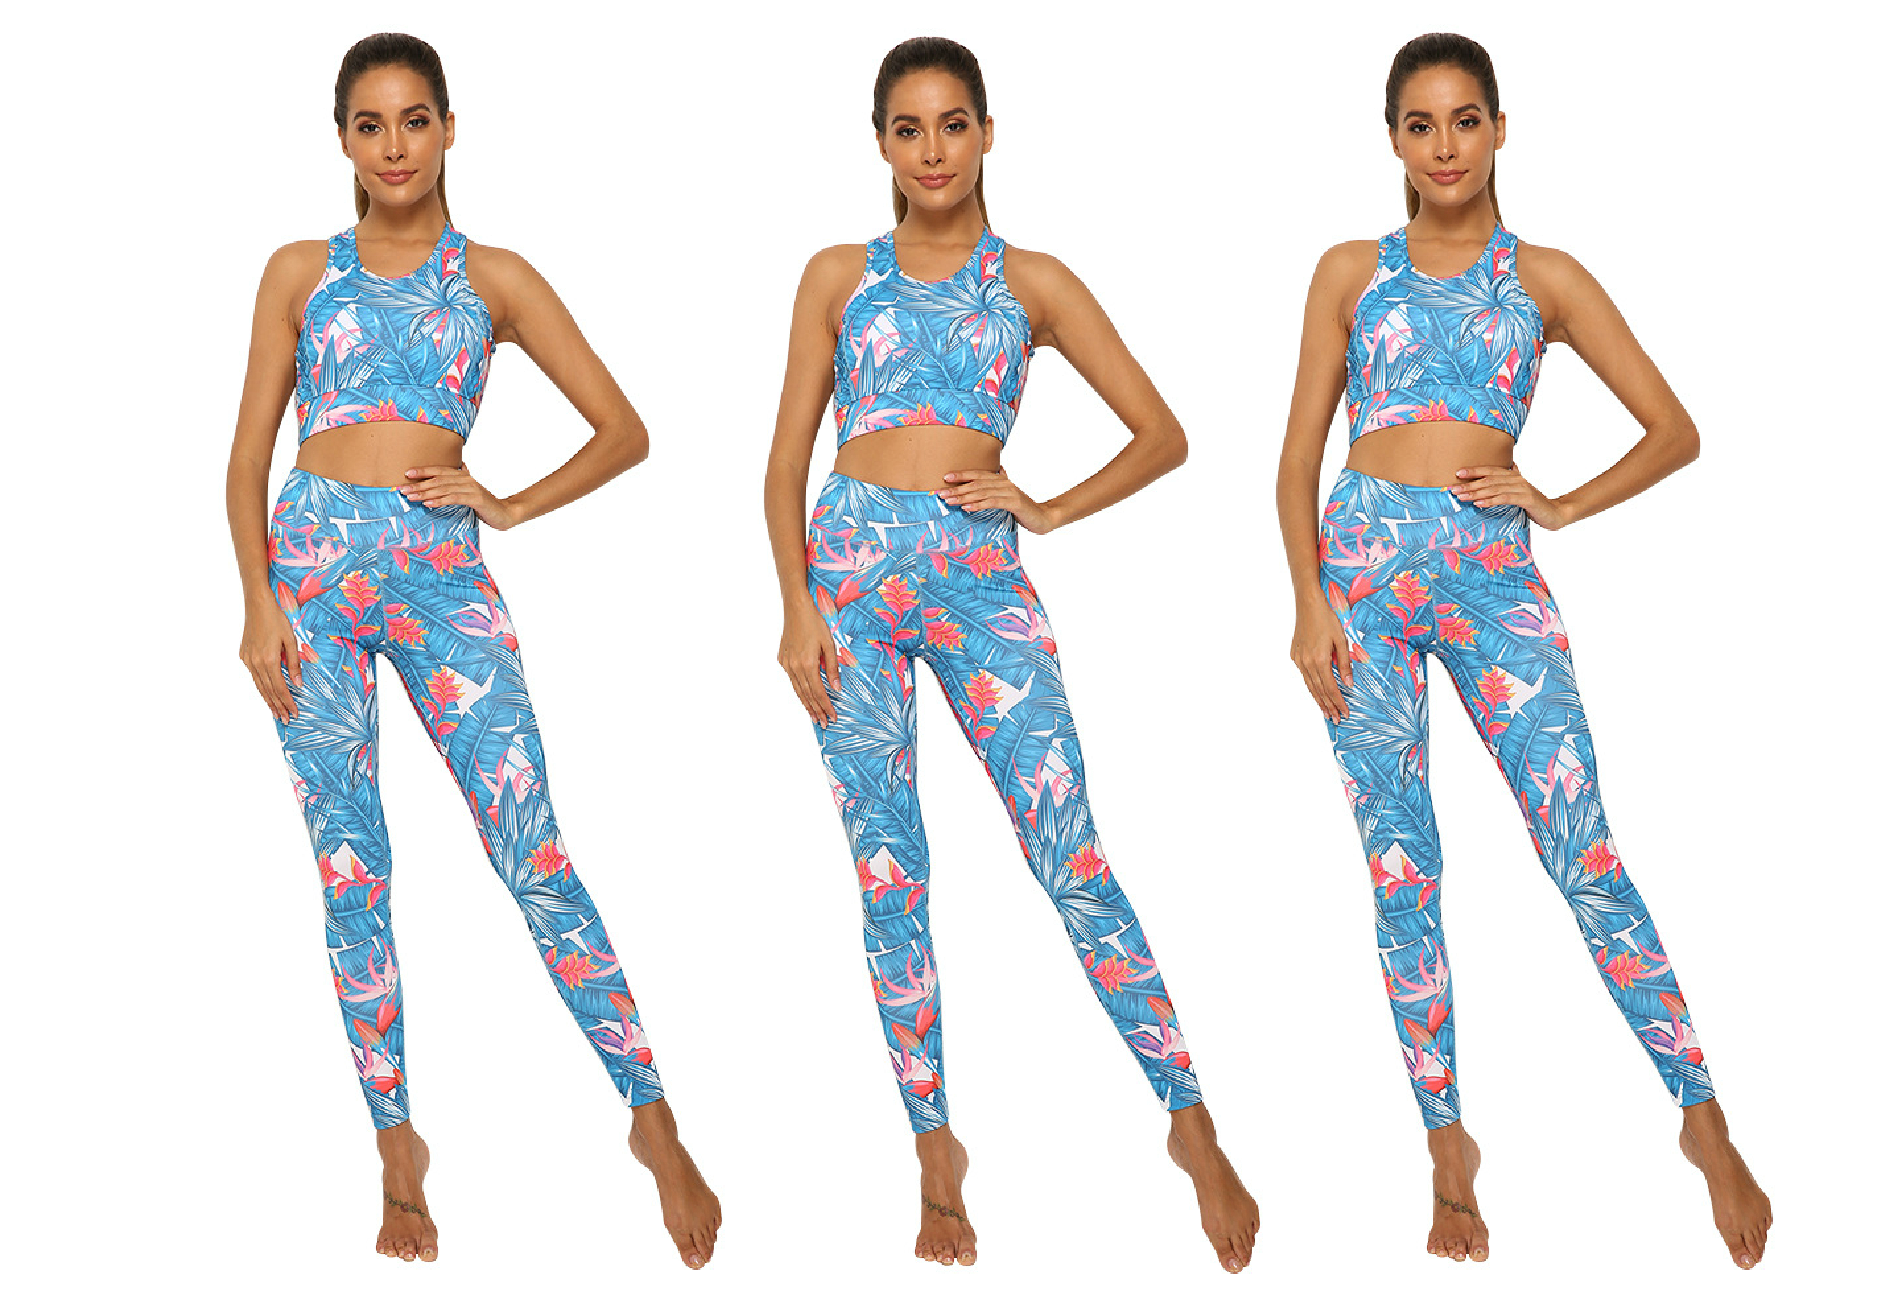 Blue Tropics Sports Bra and Leggings Set